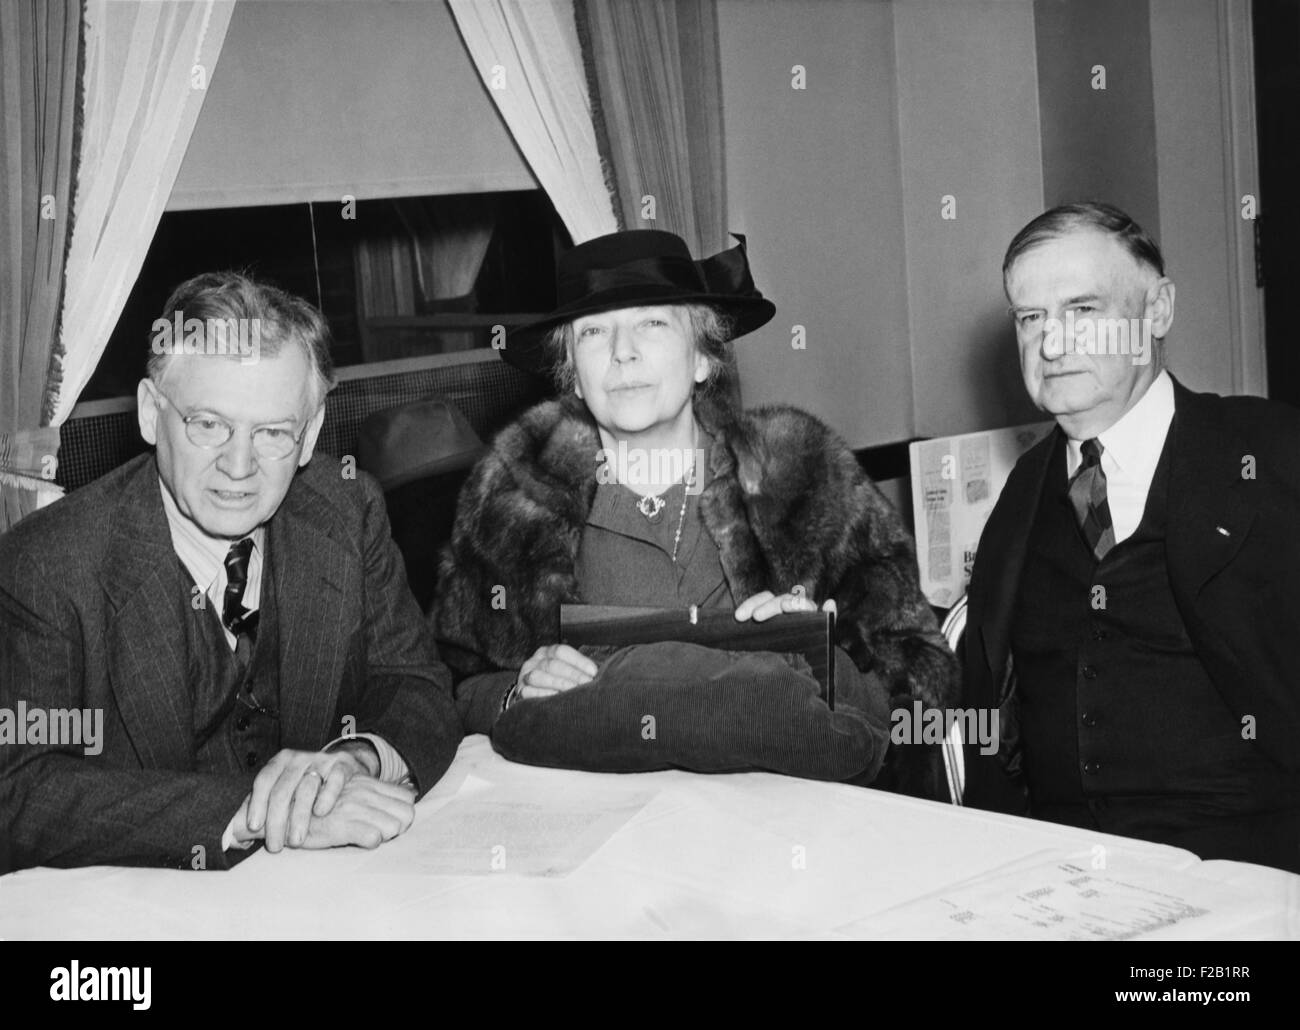 Alice Roosevelt Longworth was one of the 800,000 members of the American First Committee. At an AFC meeting, R-L: - Stock Image